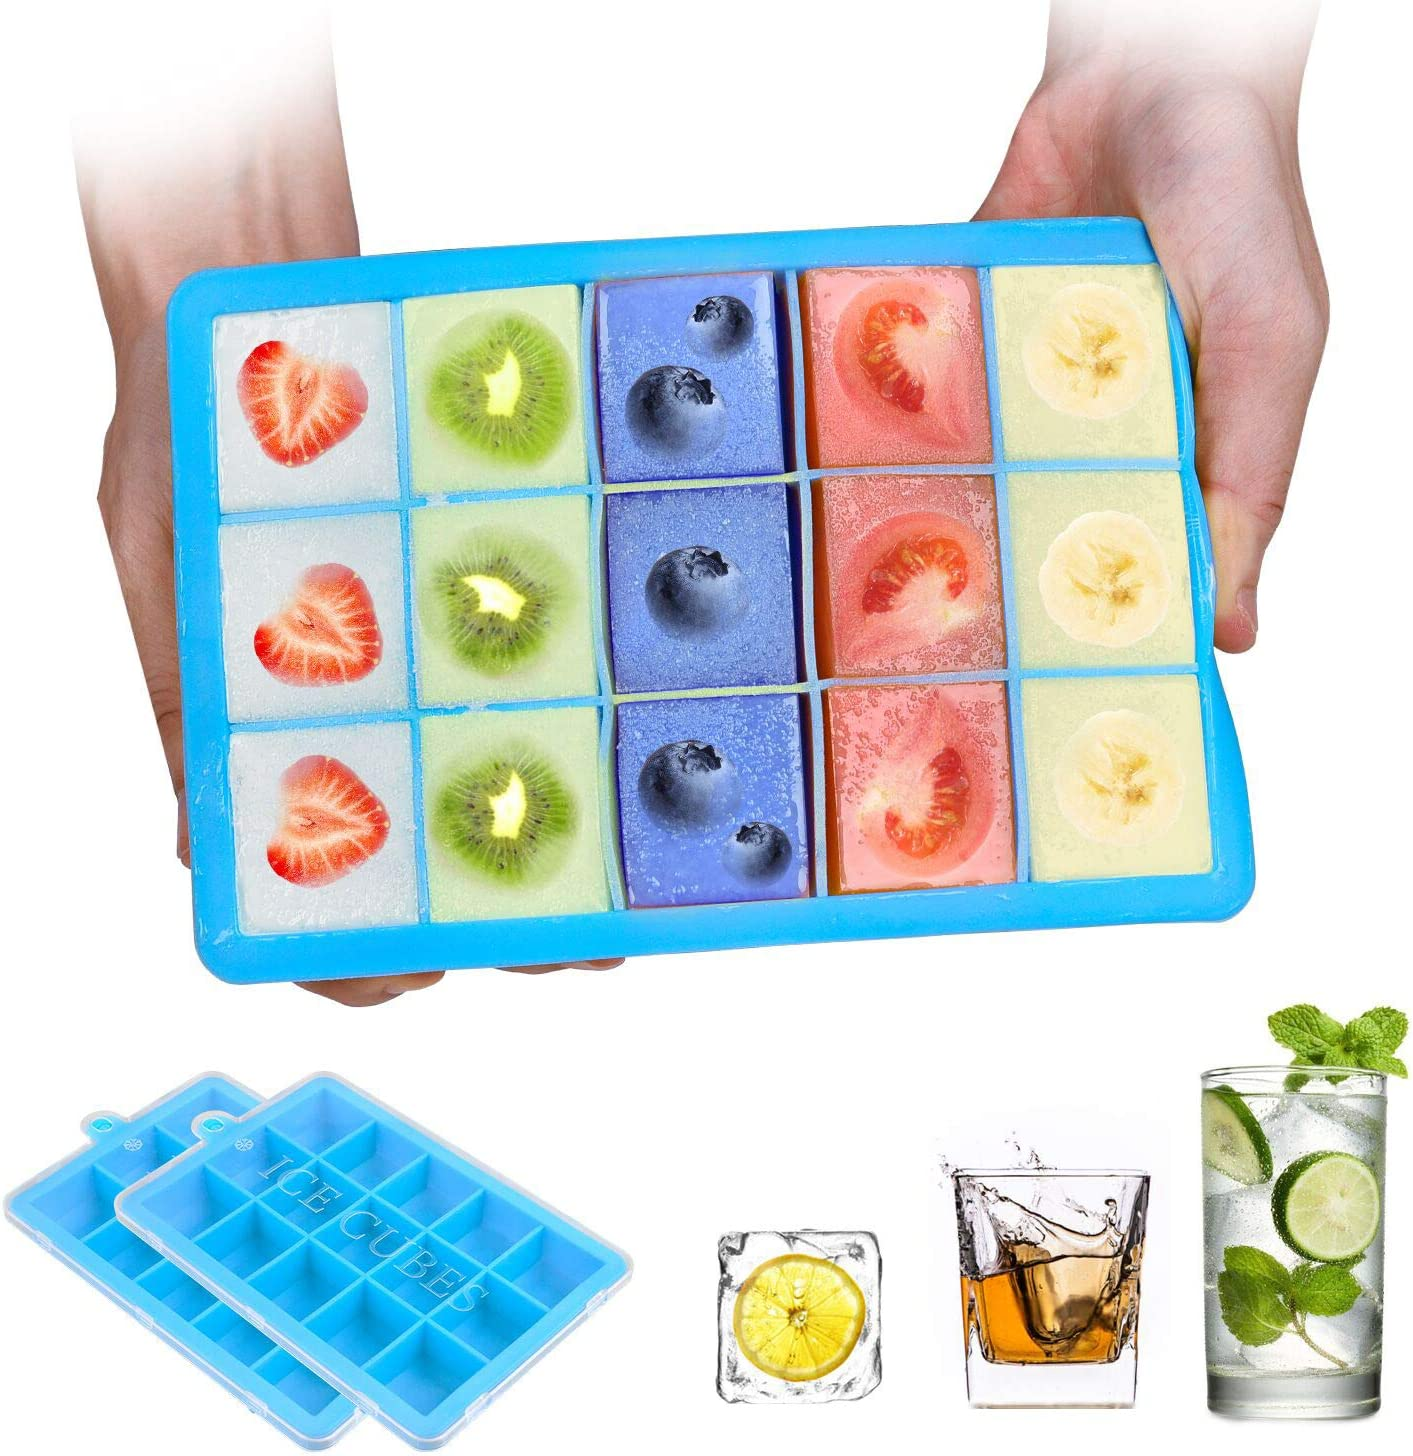 Ice Cube Trays,2-Pack Silicone Ice Cube Molds with Lid Food Grade Silica Gel Flexible and BPA Free with Spill-Resistant Removable Lid Ice Cube Molds for Chilled Drinks, Whiskey & Cocktails